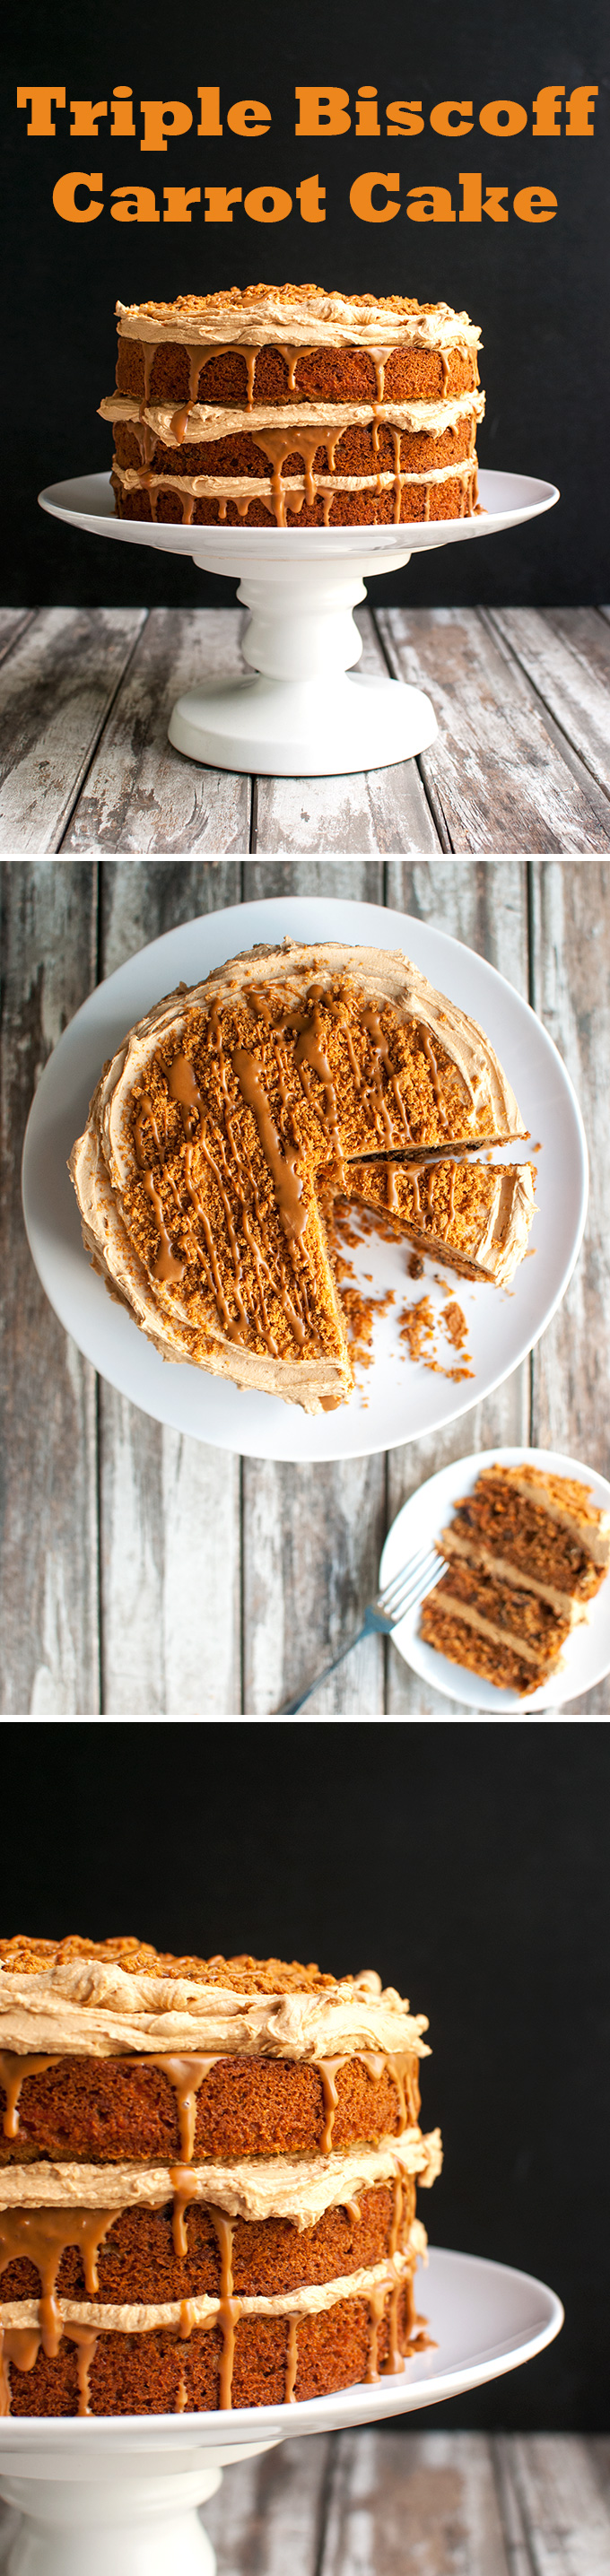 The Tough Cookie   Triple Biscoff Carrot Cake - Carrot Cake Studded with Pecans and Filled with Biscoff Frosting and Cookie Butter   thetoughcookie.com